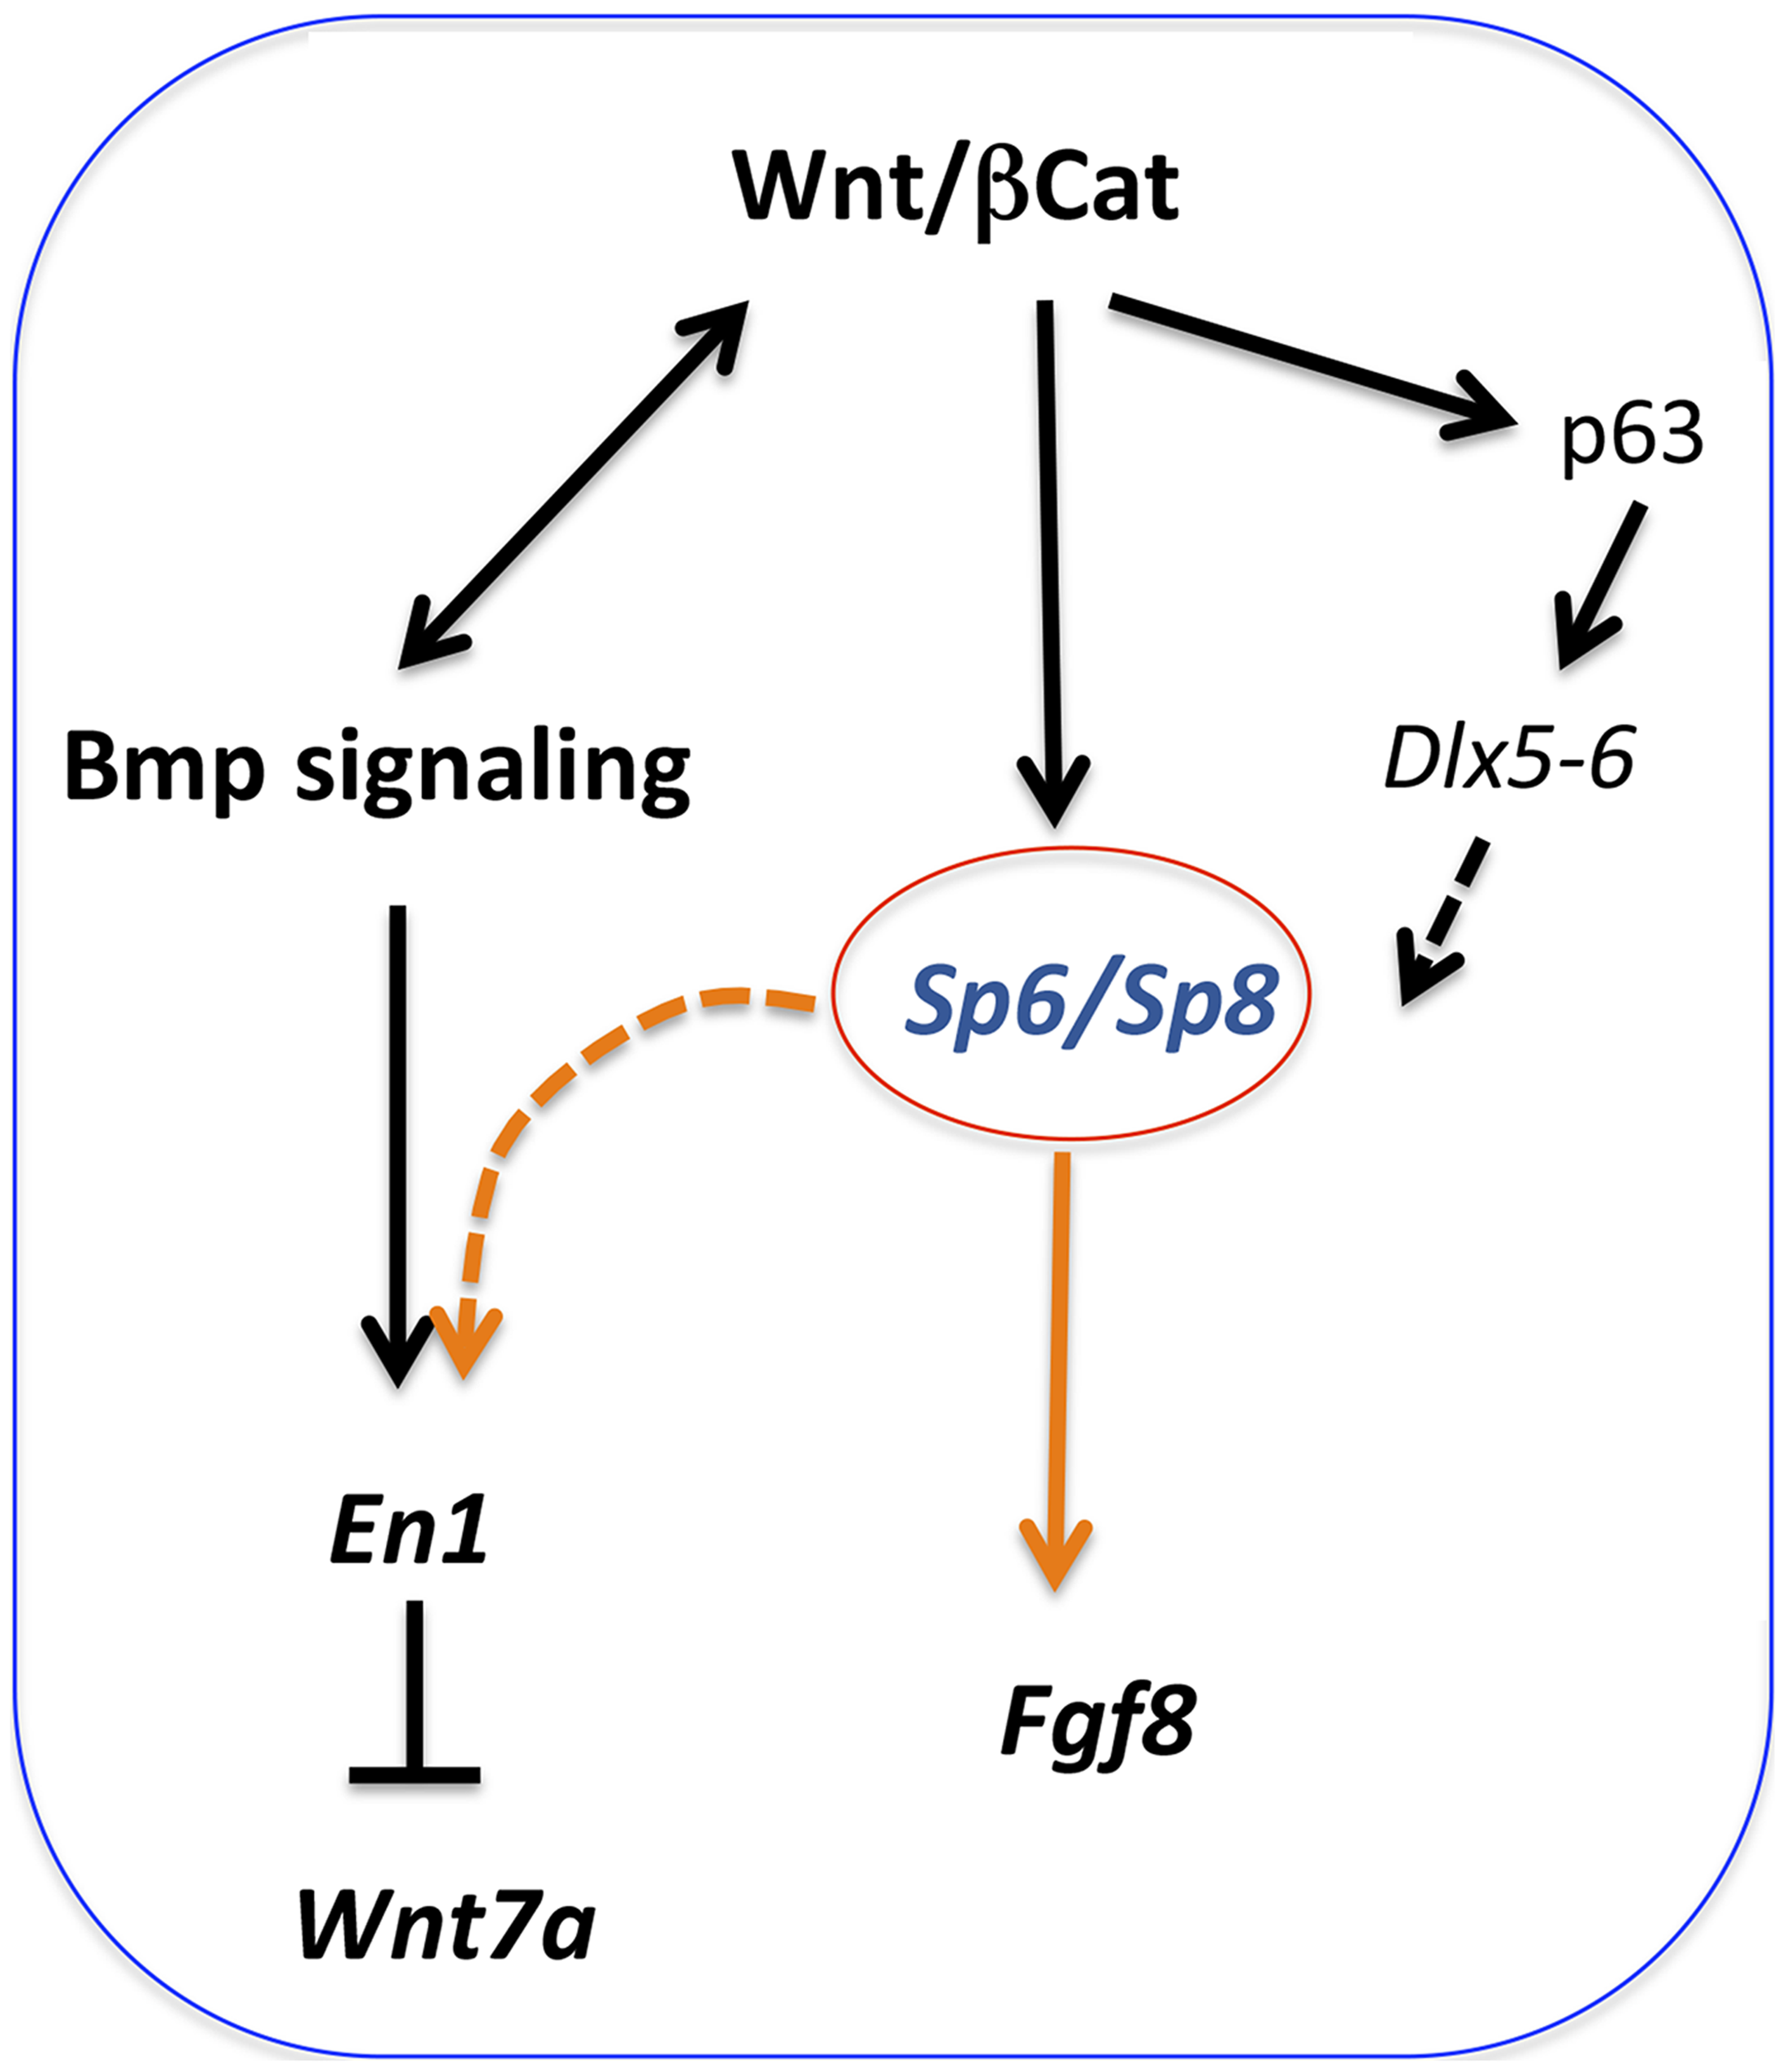 Regulatory pathways mediated by Sp6 and Sp8.